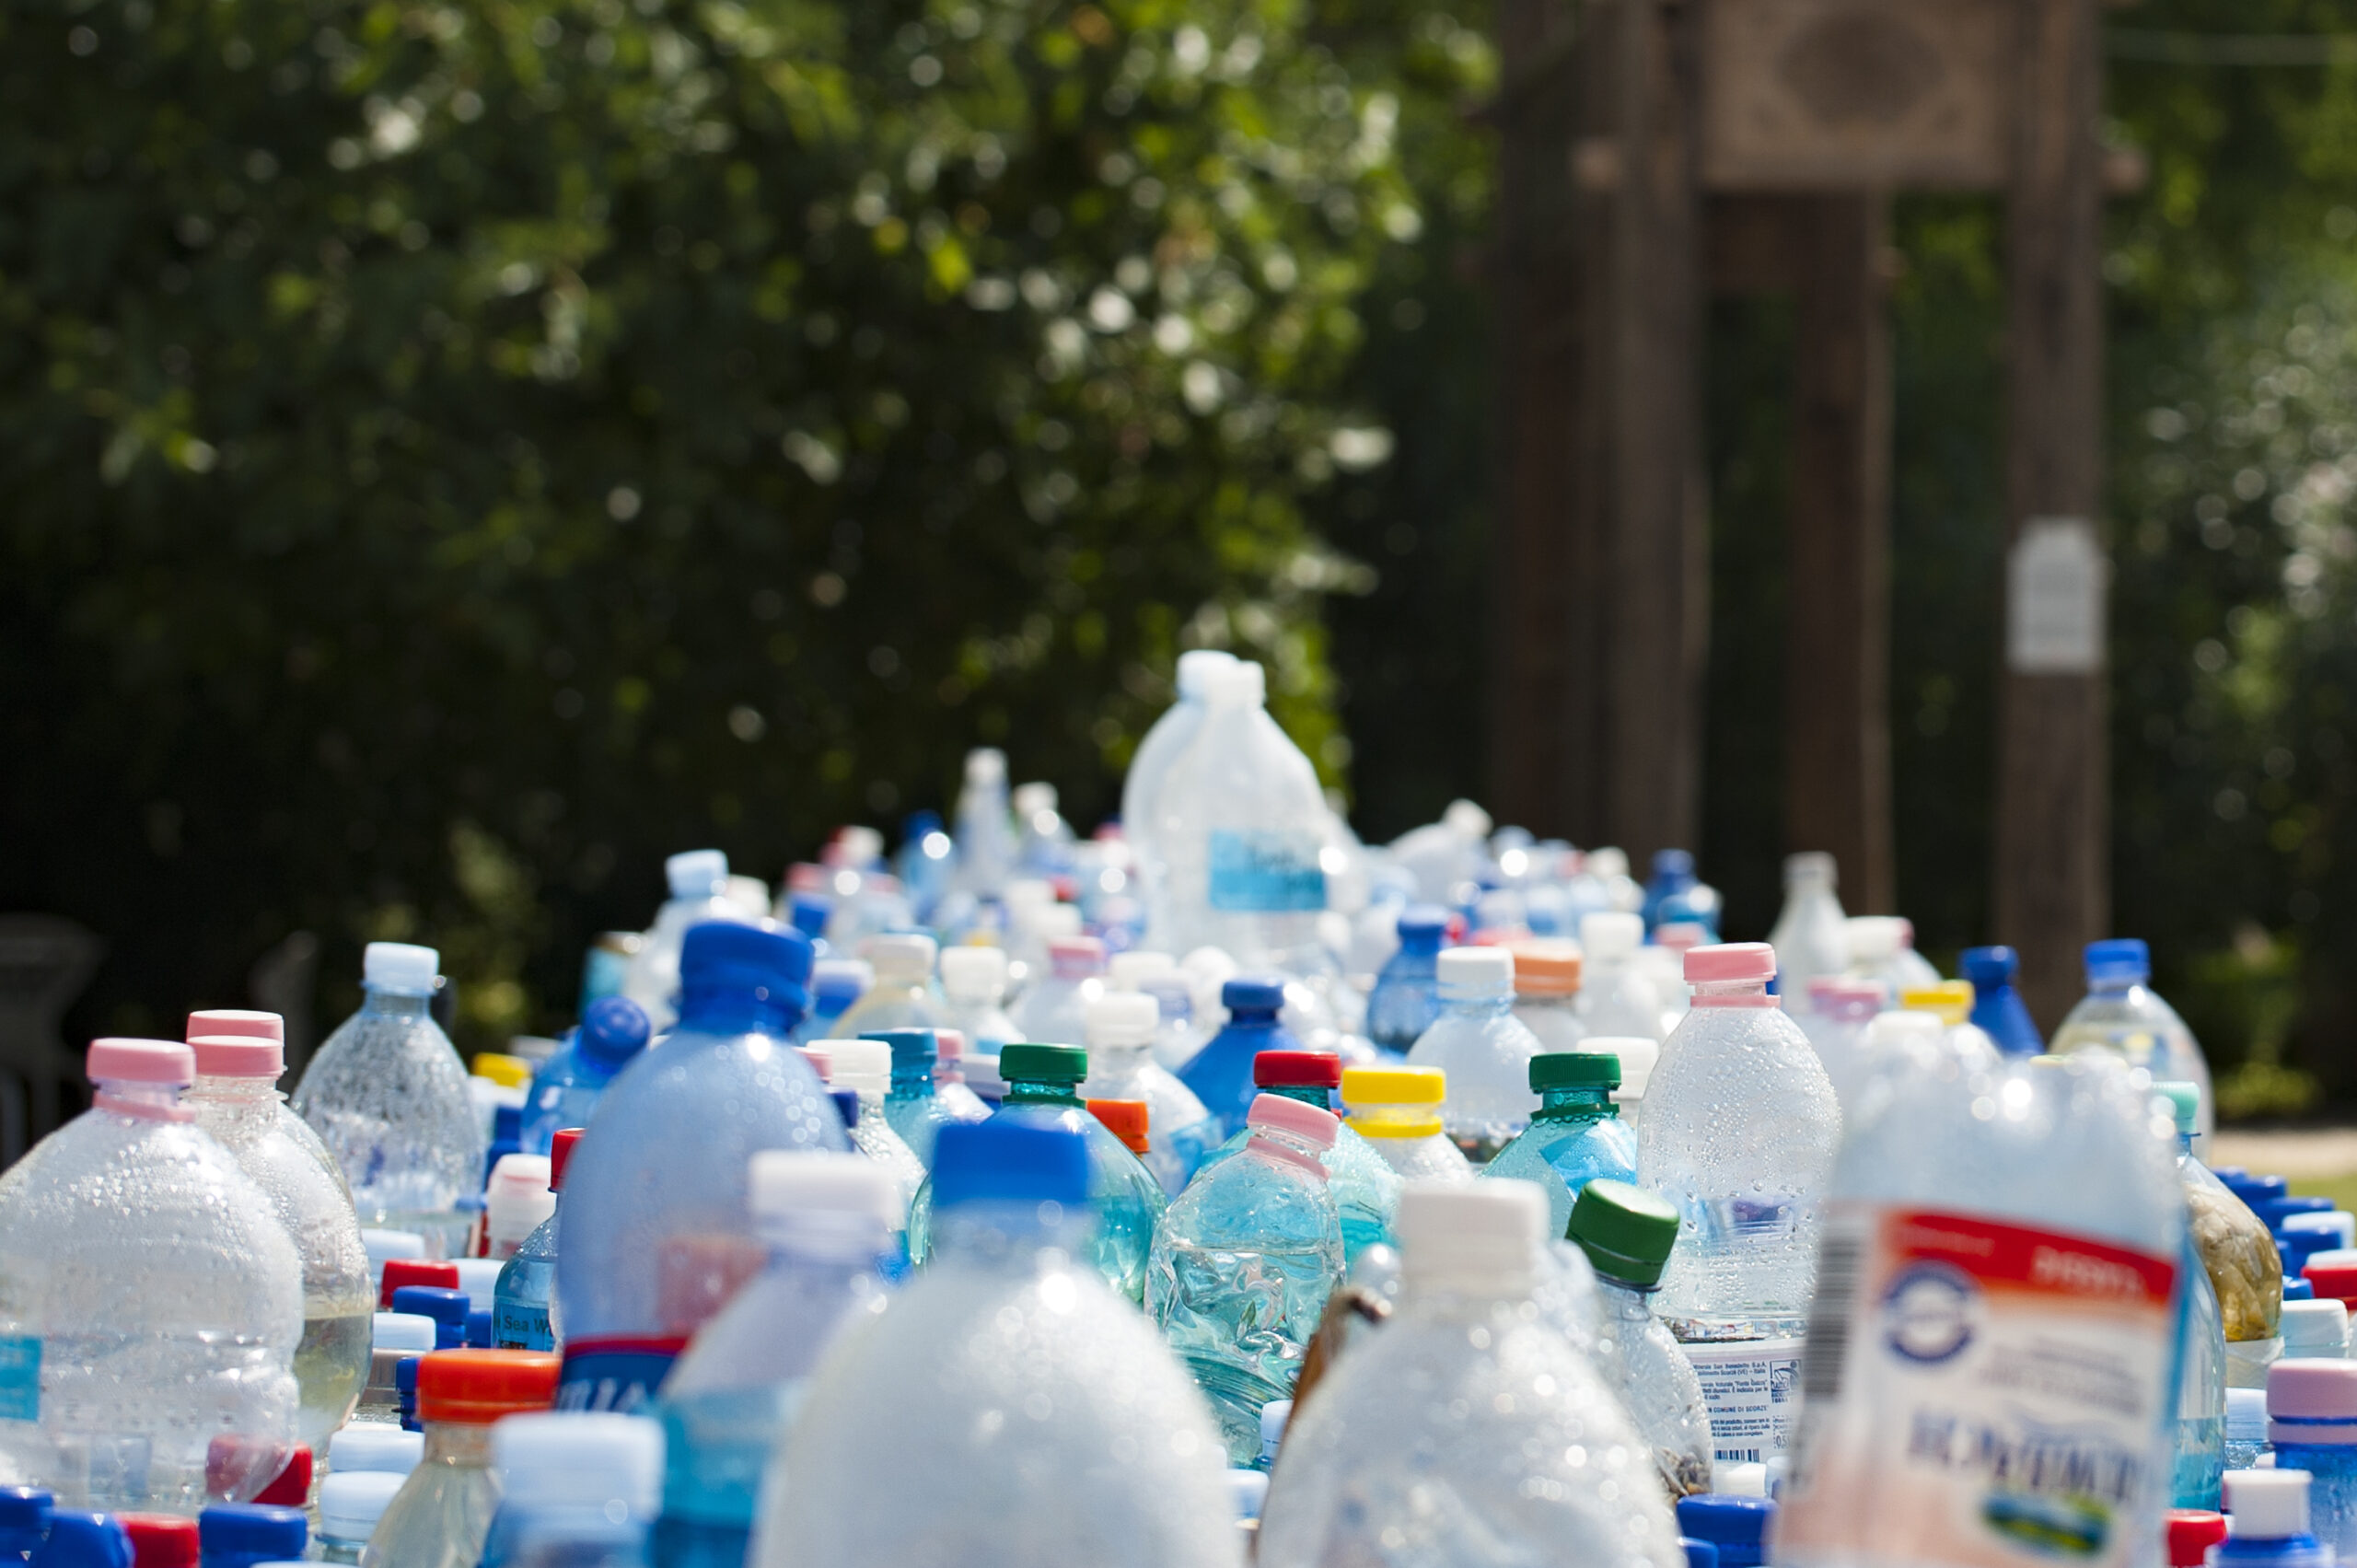 Teaching Children About Waste: 10 Easy Tips